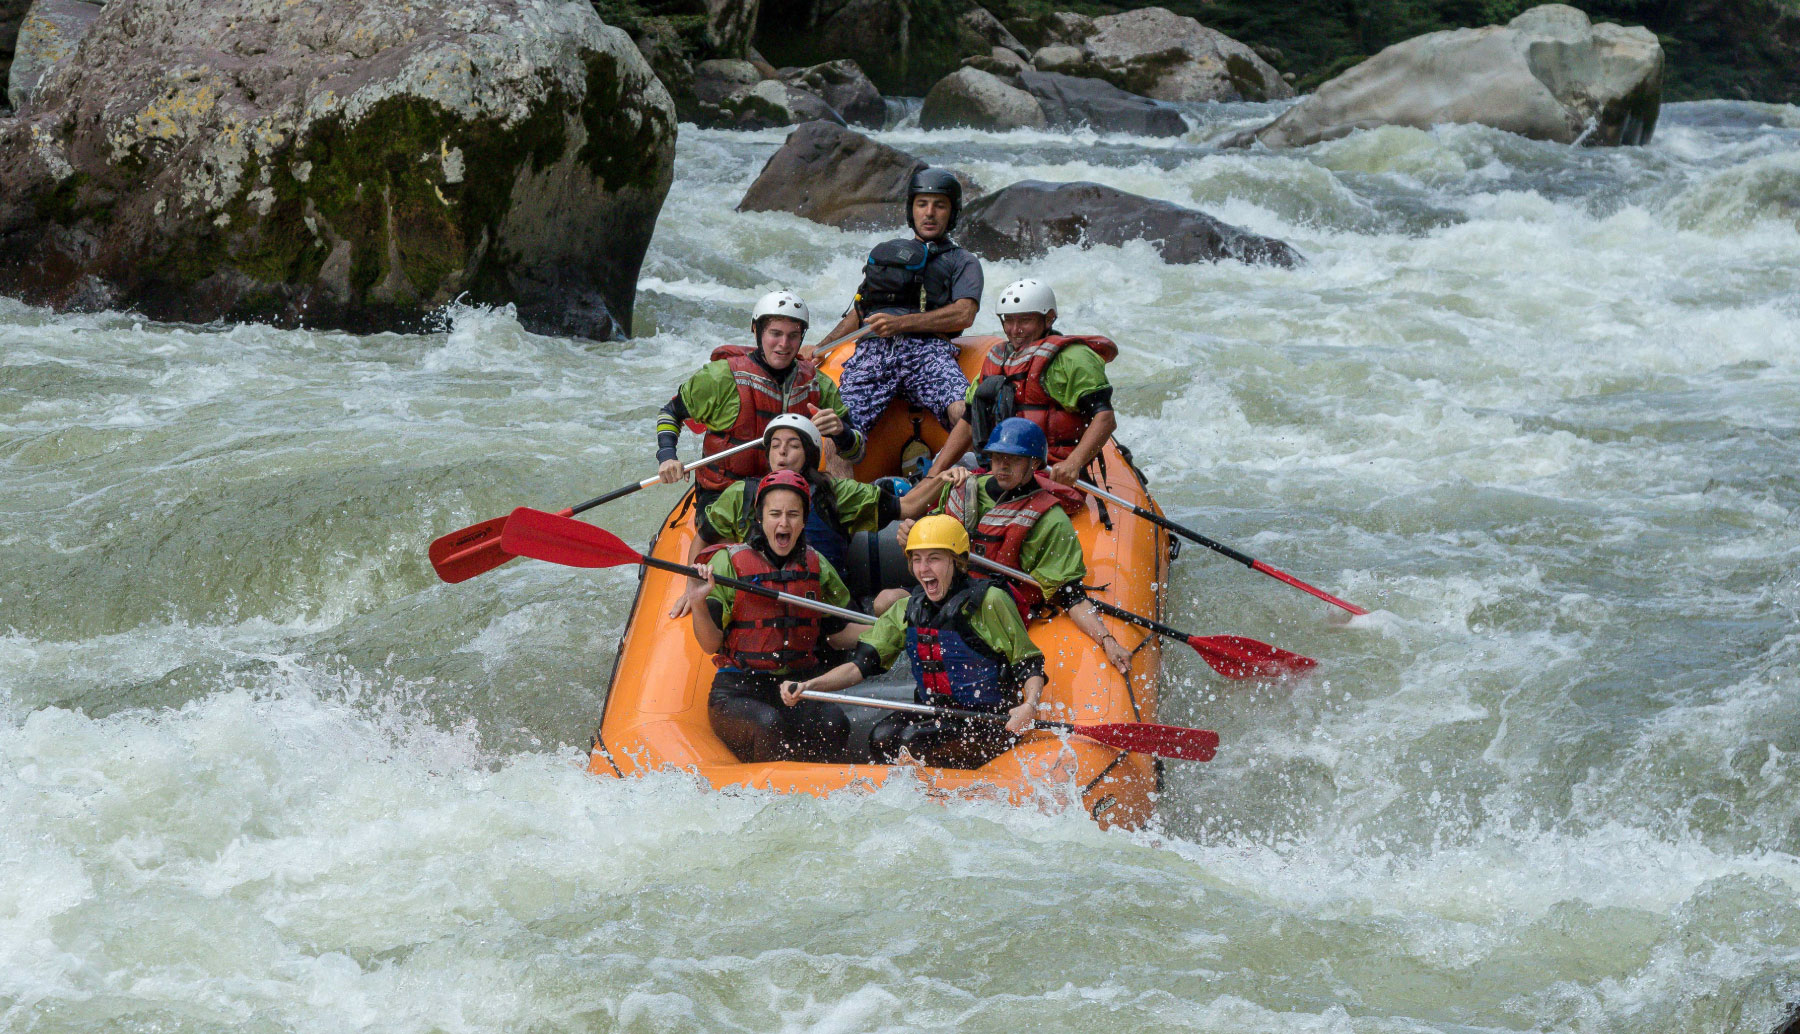 Rafting class IV in the Jondachi river